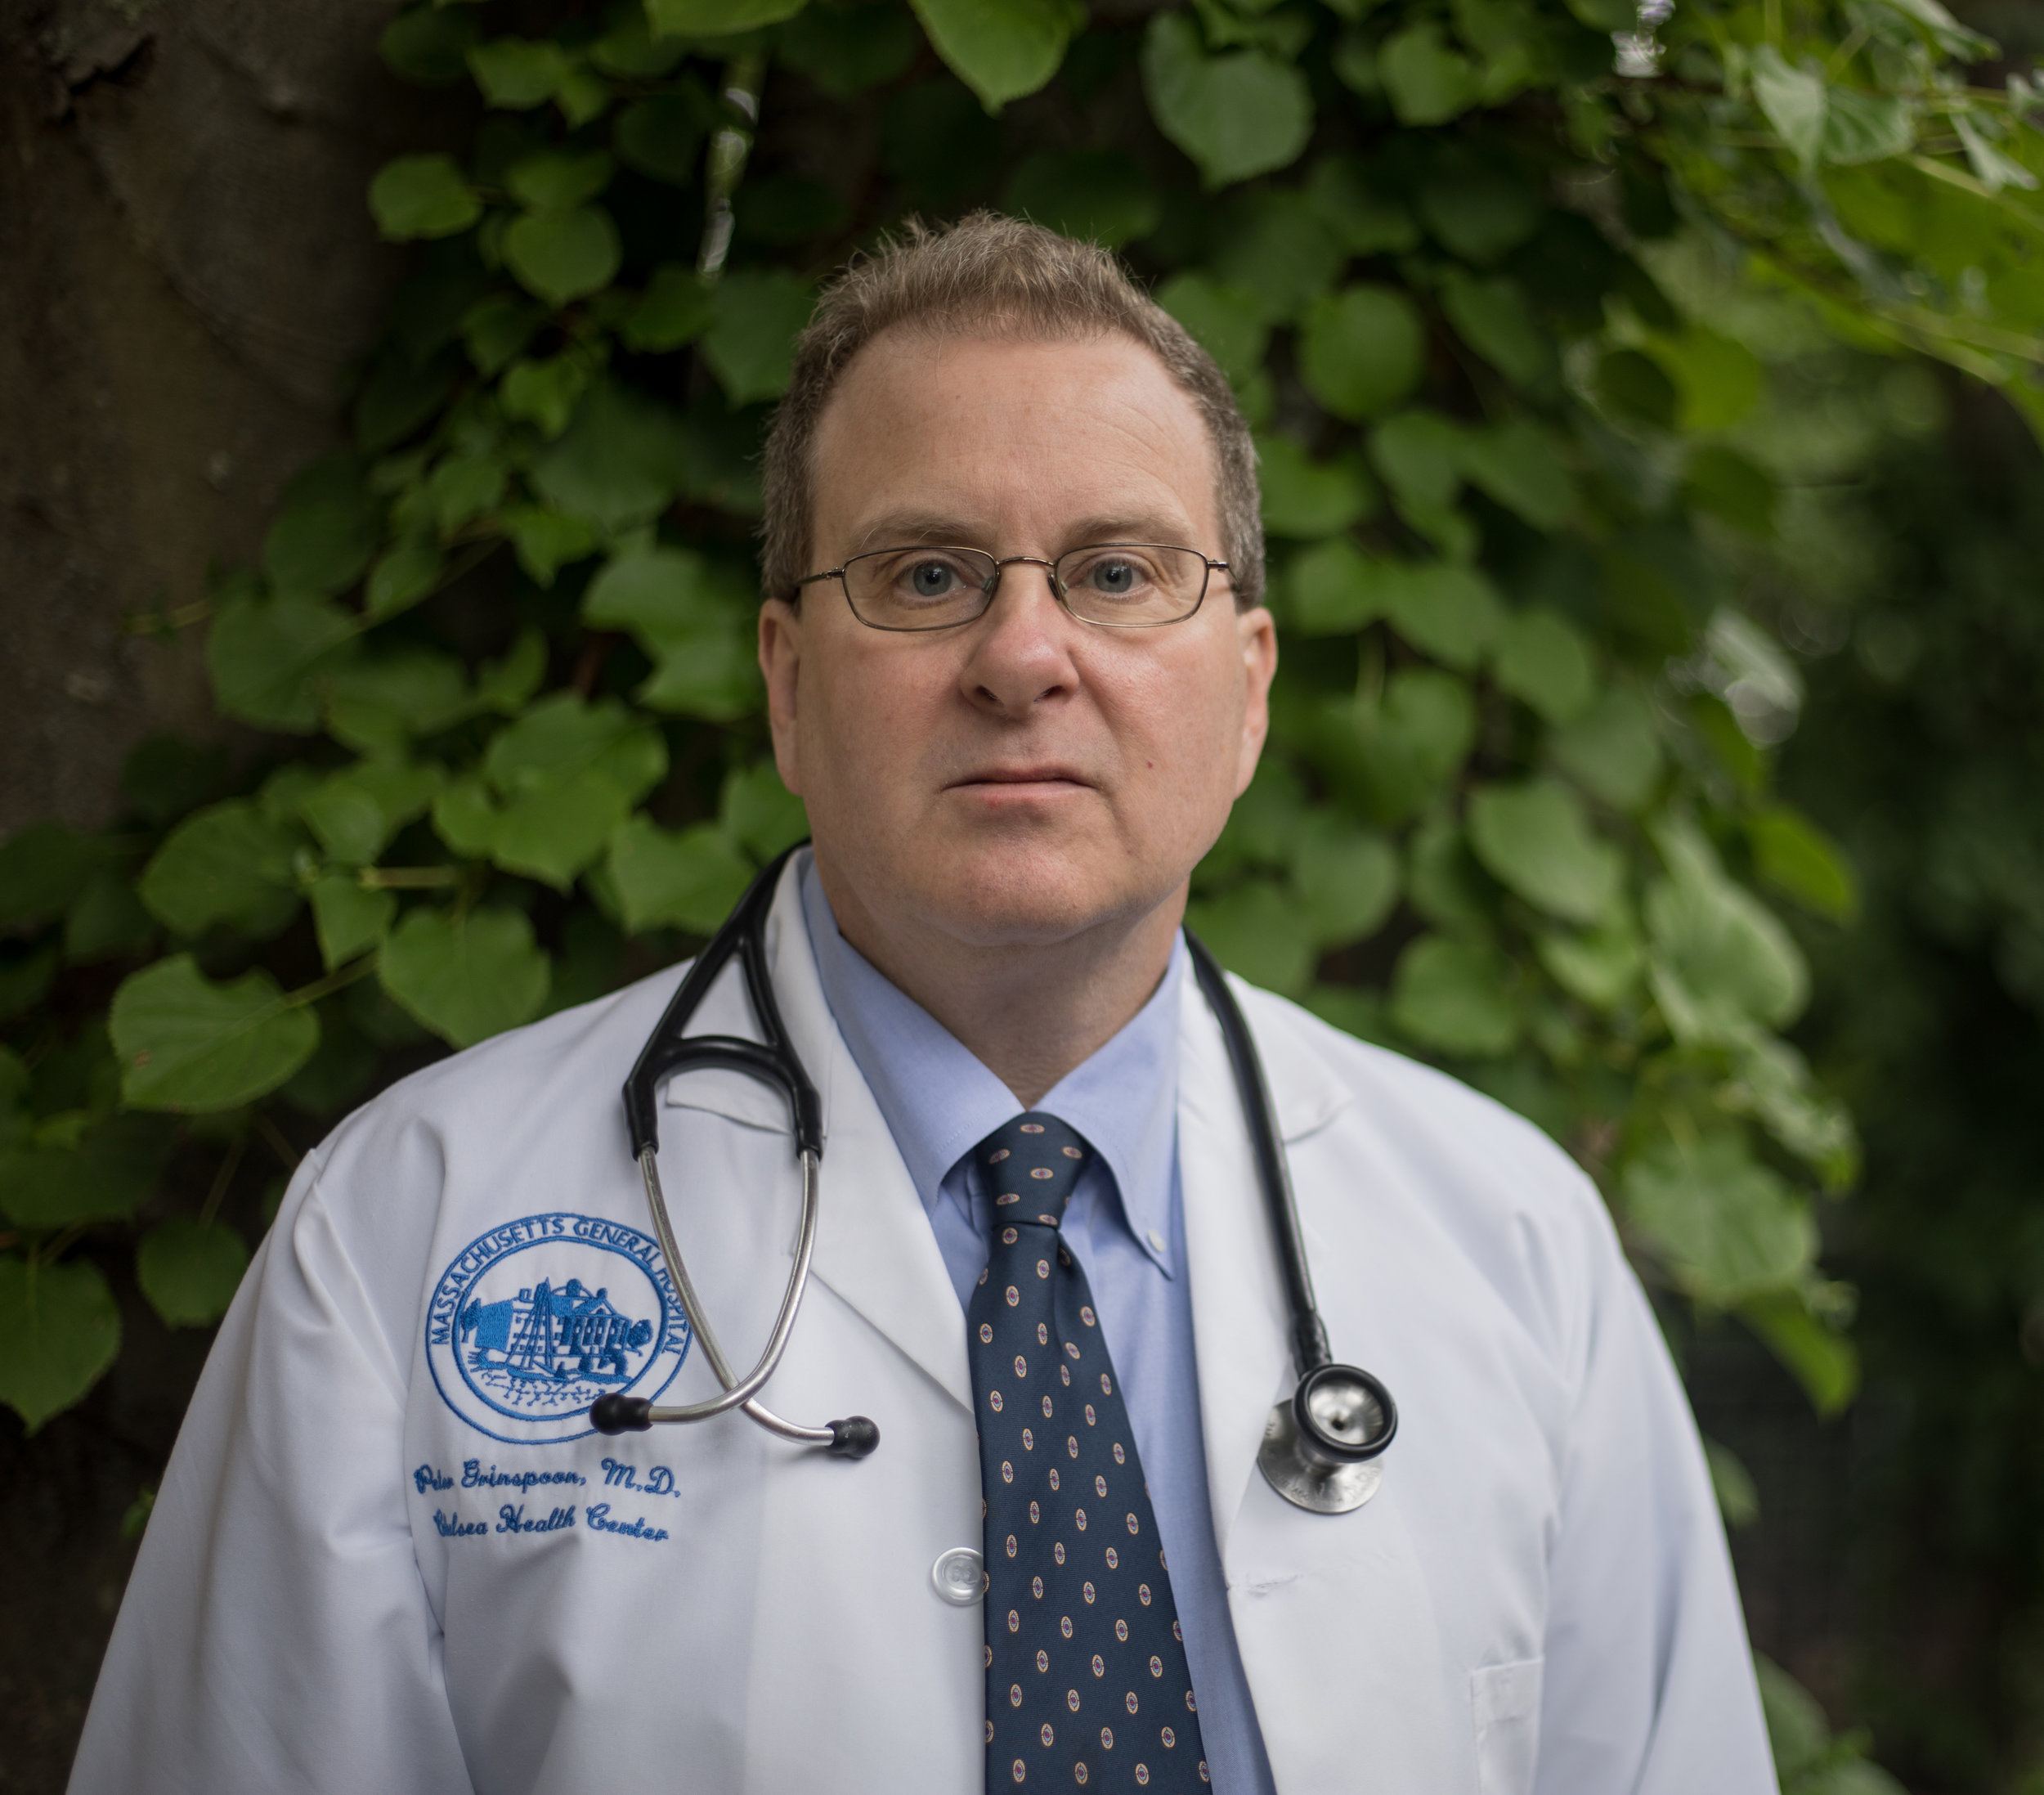 Today's guest: Dr. Peter Grinspoon - Peter Grinspoon, M.D. is a primary care physician and cannabis practitioner at Massachusetts General Hospital and an Instructor at Harvard Medical School. He is a board member of the advocacy group Doctors For Cannabis Regulation. He spent two years as an Associate Director of the Massachusetts Physician Health Service helping physicians with addiction and mental health issues. He is the author of the memoir 'Free Refills: A Doctor Confronts His Addiction'